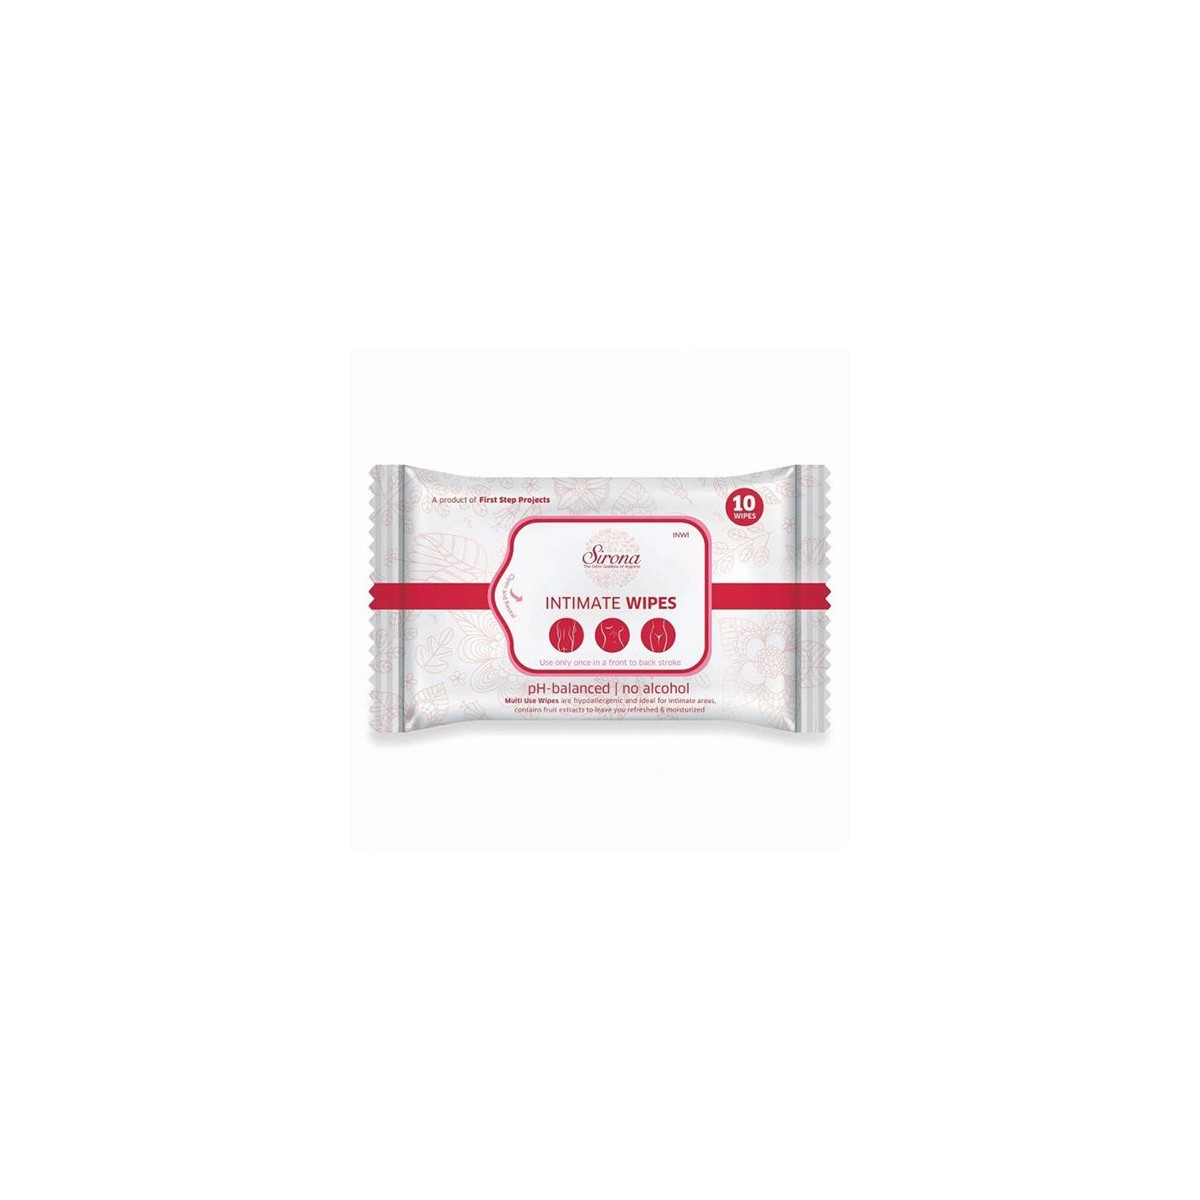 Intimate Wet Wipes by SIRONA - 10 Wipes (1 Pack - 10 Wipes Each)